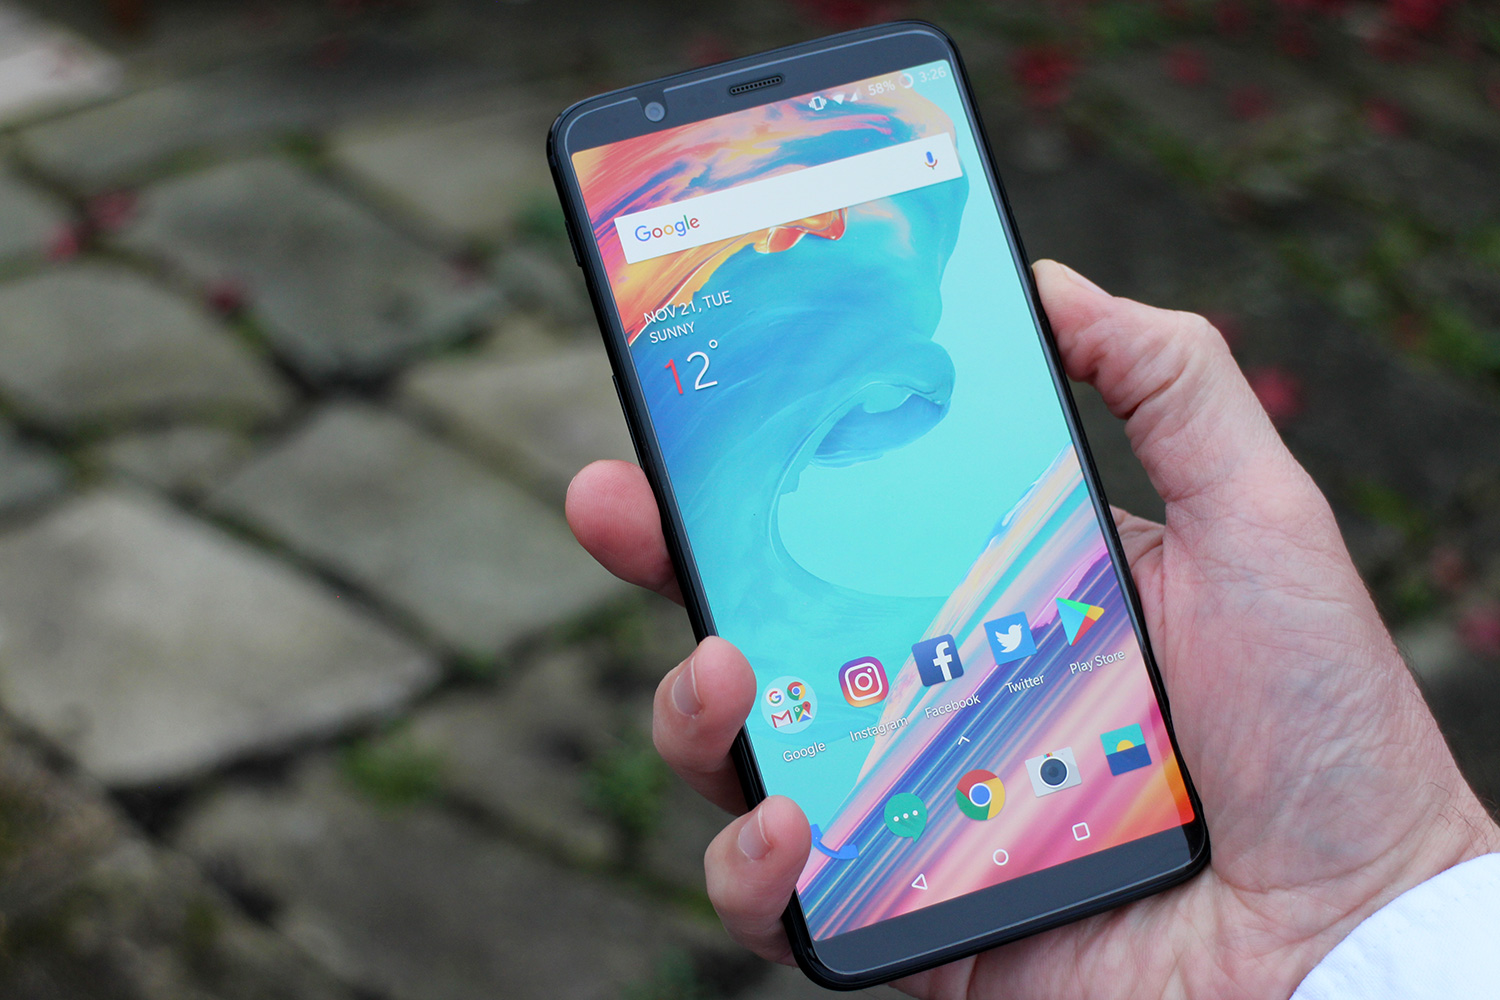 OnePlus 6 to be released late second quarter with Snapdragon 845 chipset